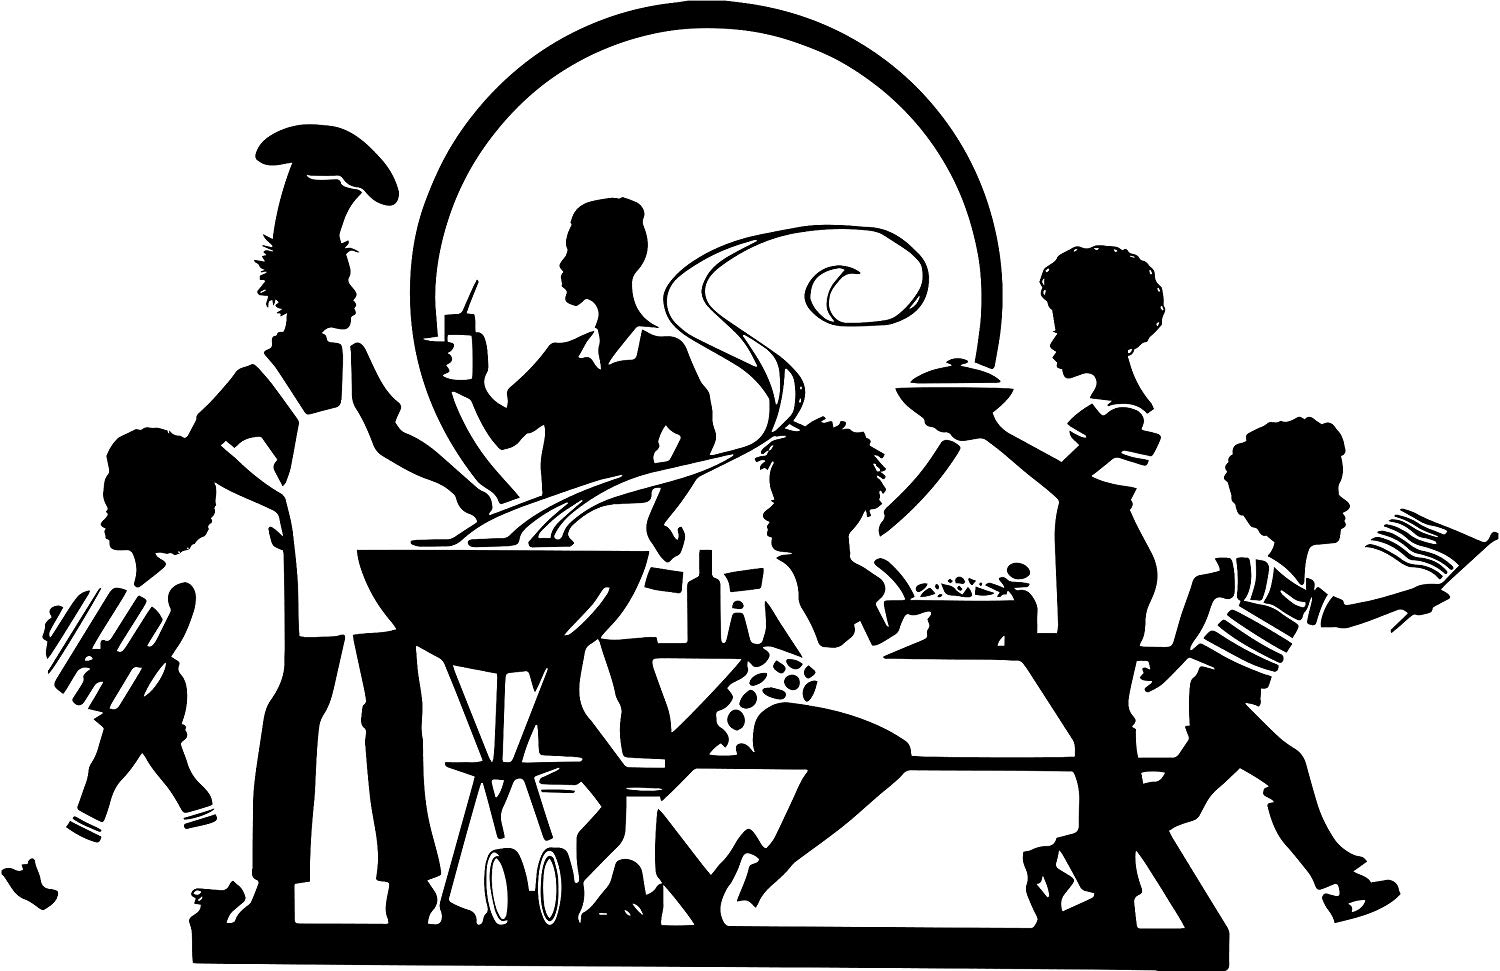 Stick african american family of 5 clipart banner download Amazon.com: EvelynDavid Black Family Picnic Barbecue Having Fun Afro ... banner download